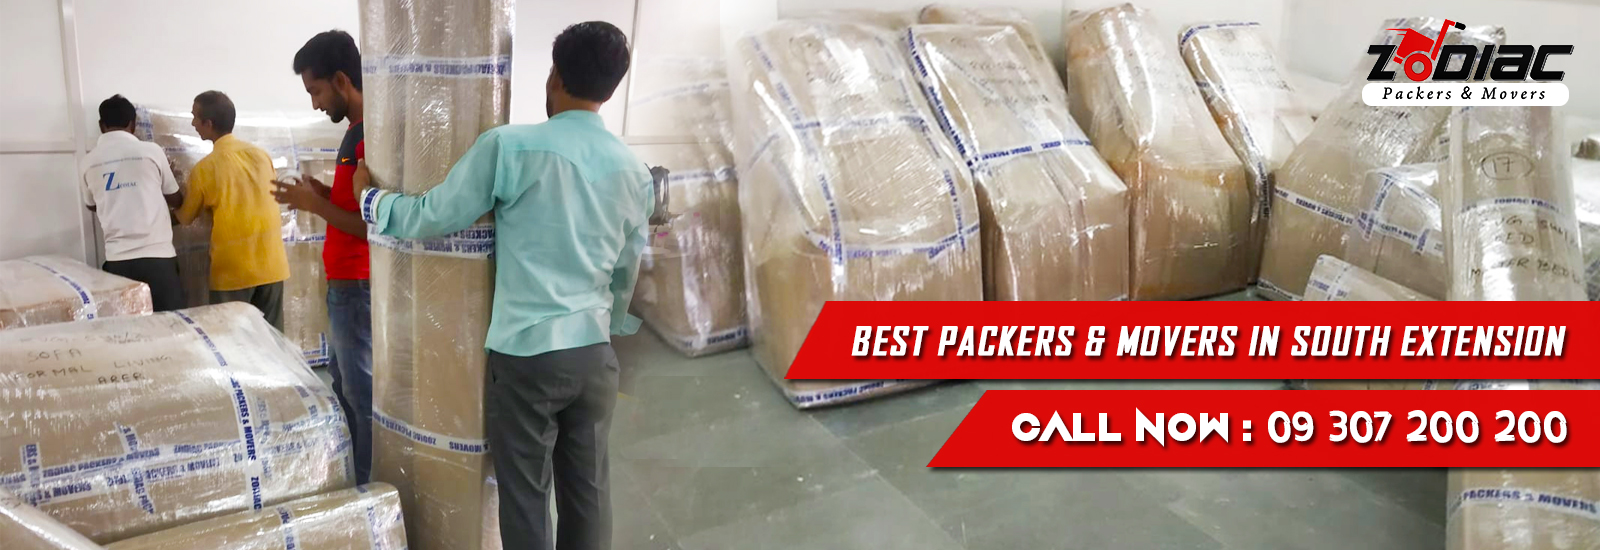 Packers and Movers in South Extension